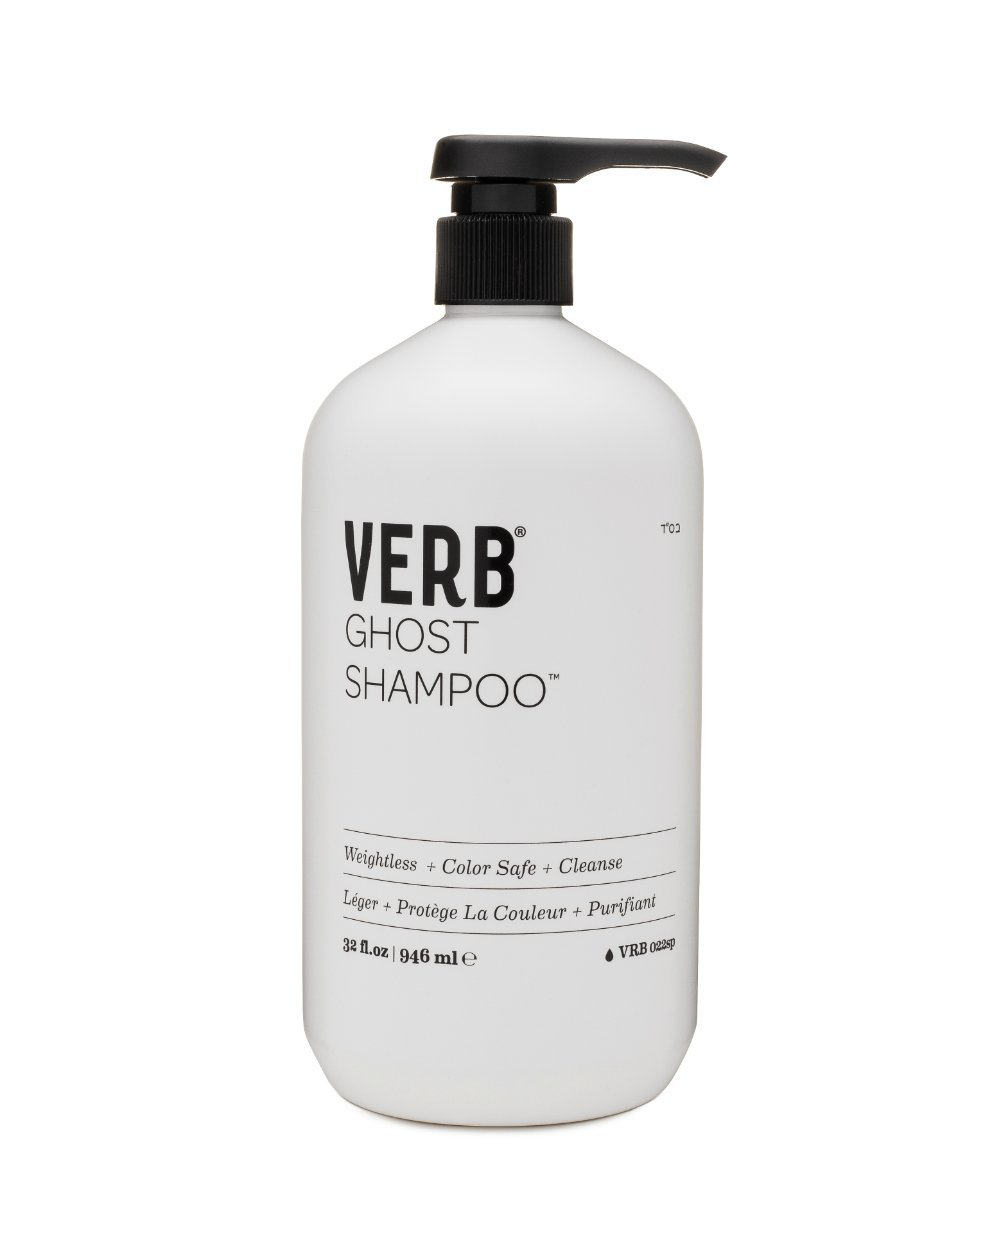 Verb Ghost Shampoo for Unisex, 32 Ounce by verb